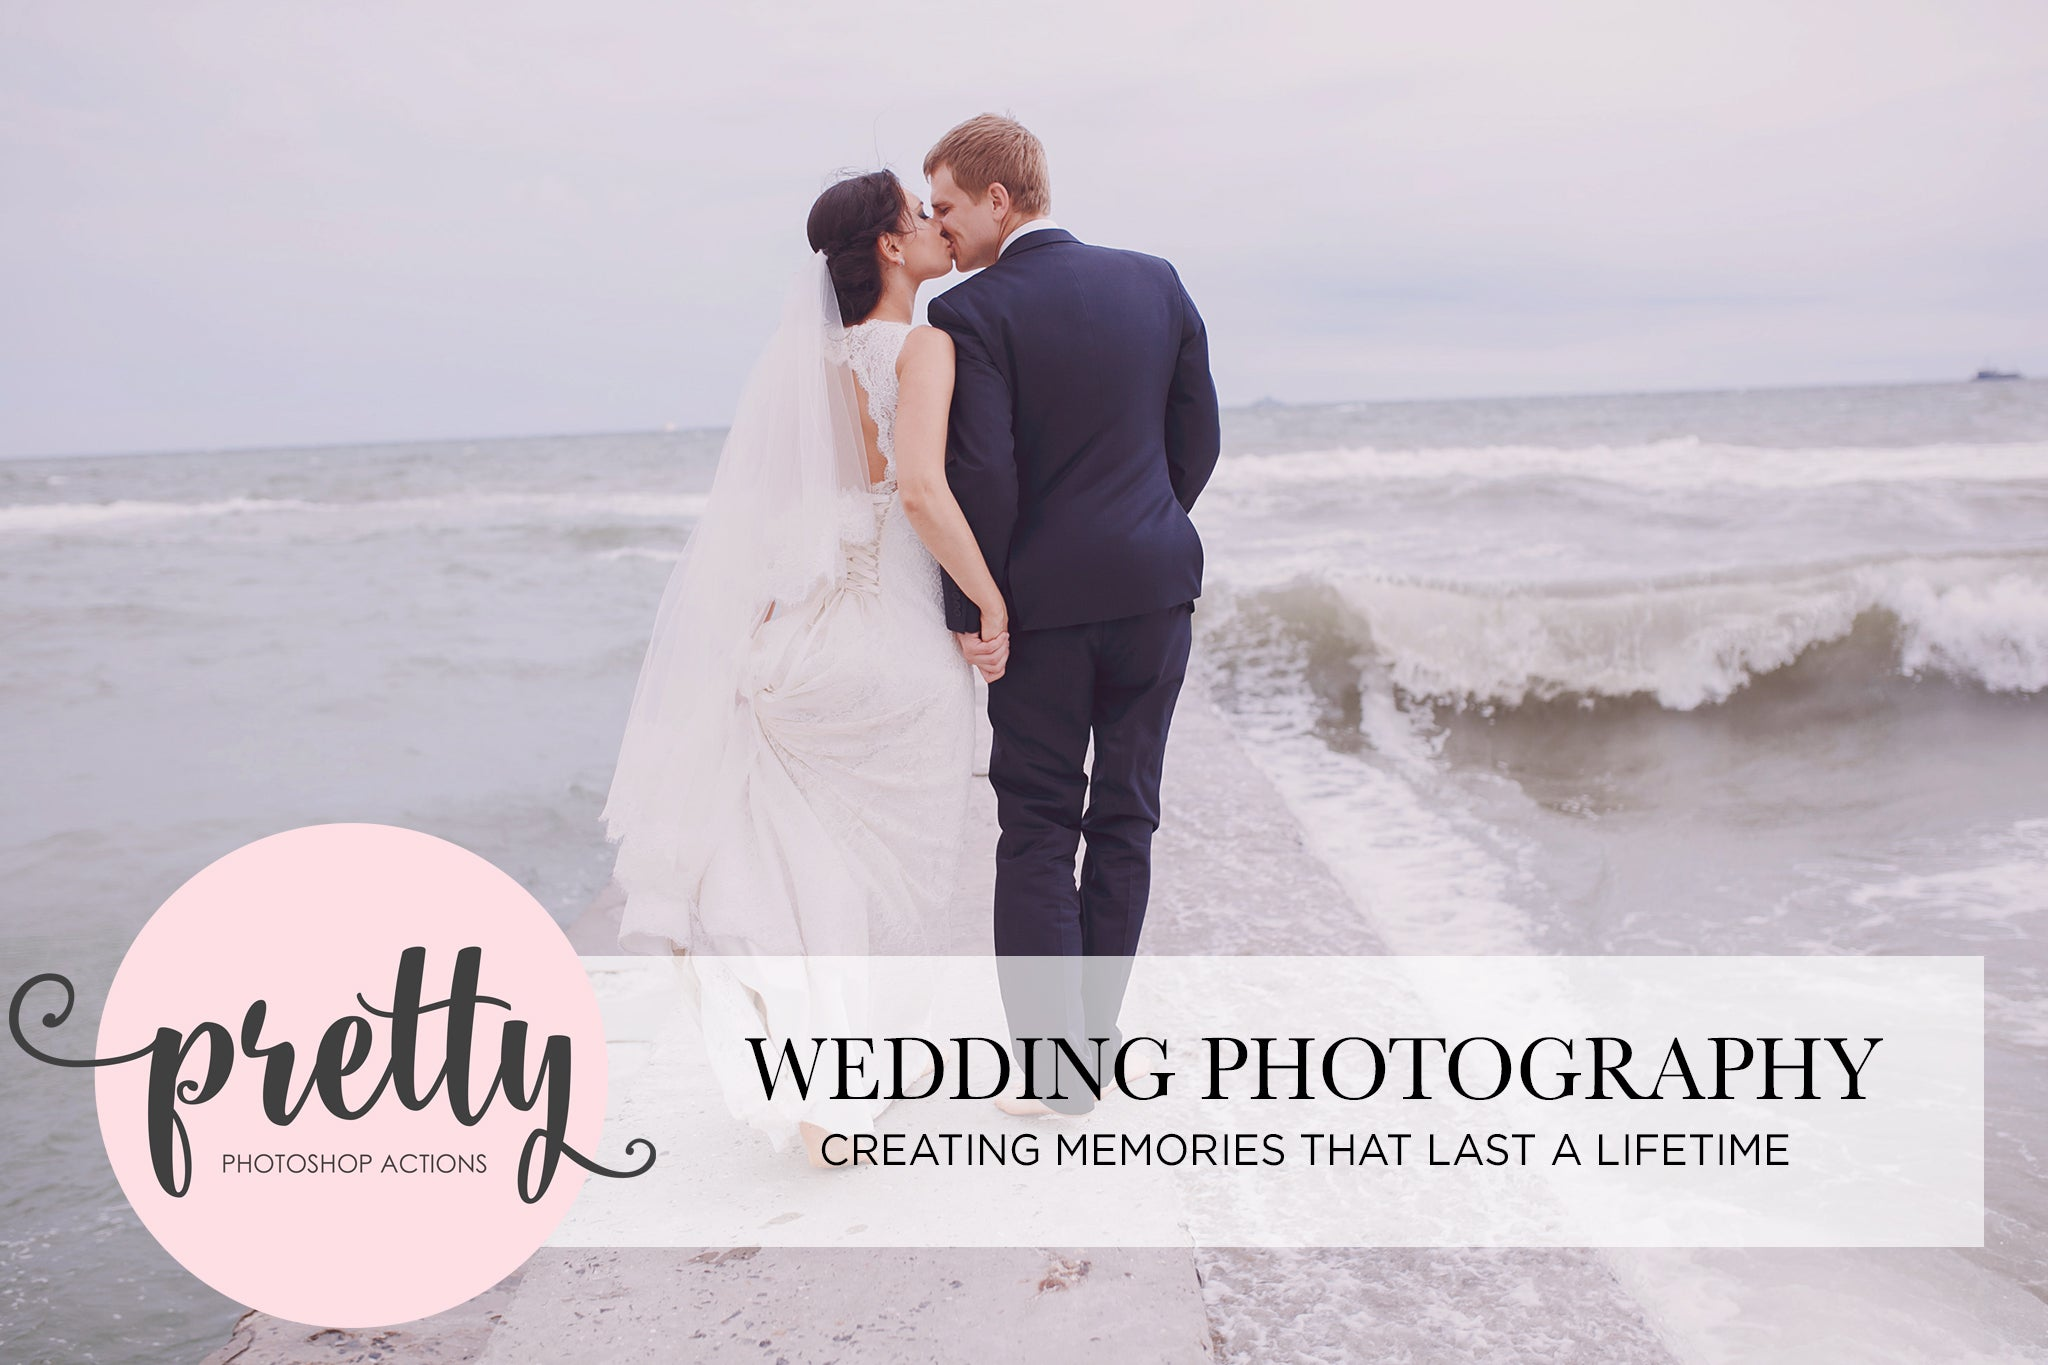 Wedding Photography Tips - Pretty Photoshop Actions